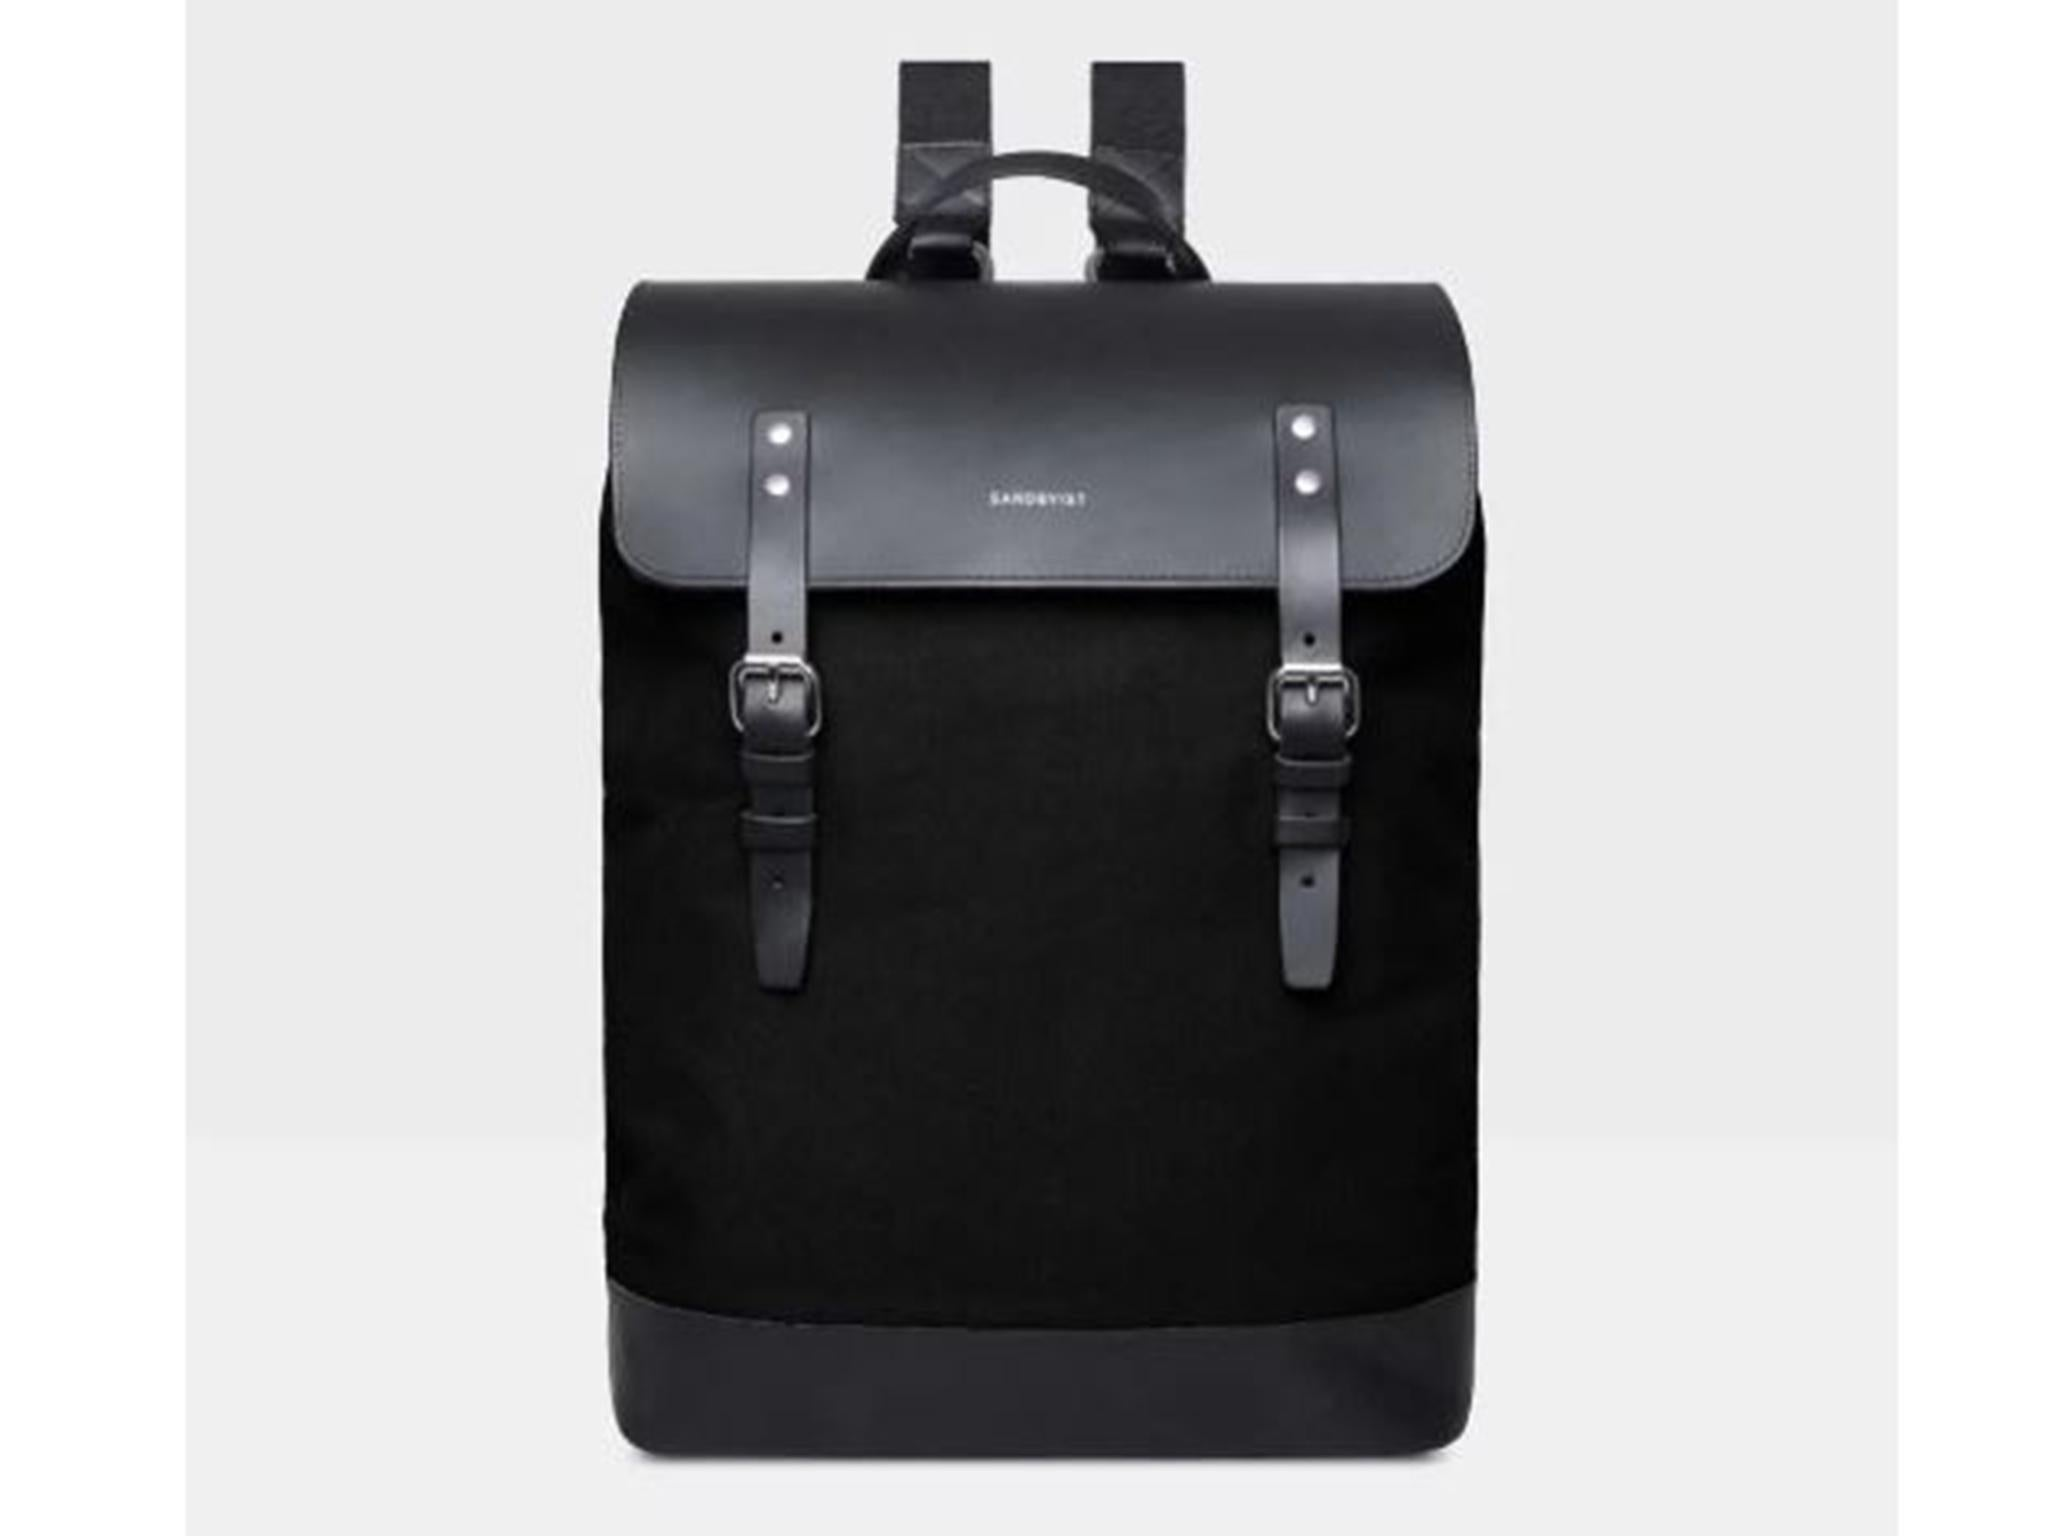 ba1b7c44a1e2 Backpacks are rarely described as elegant